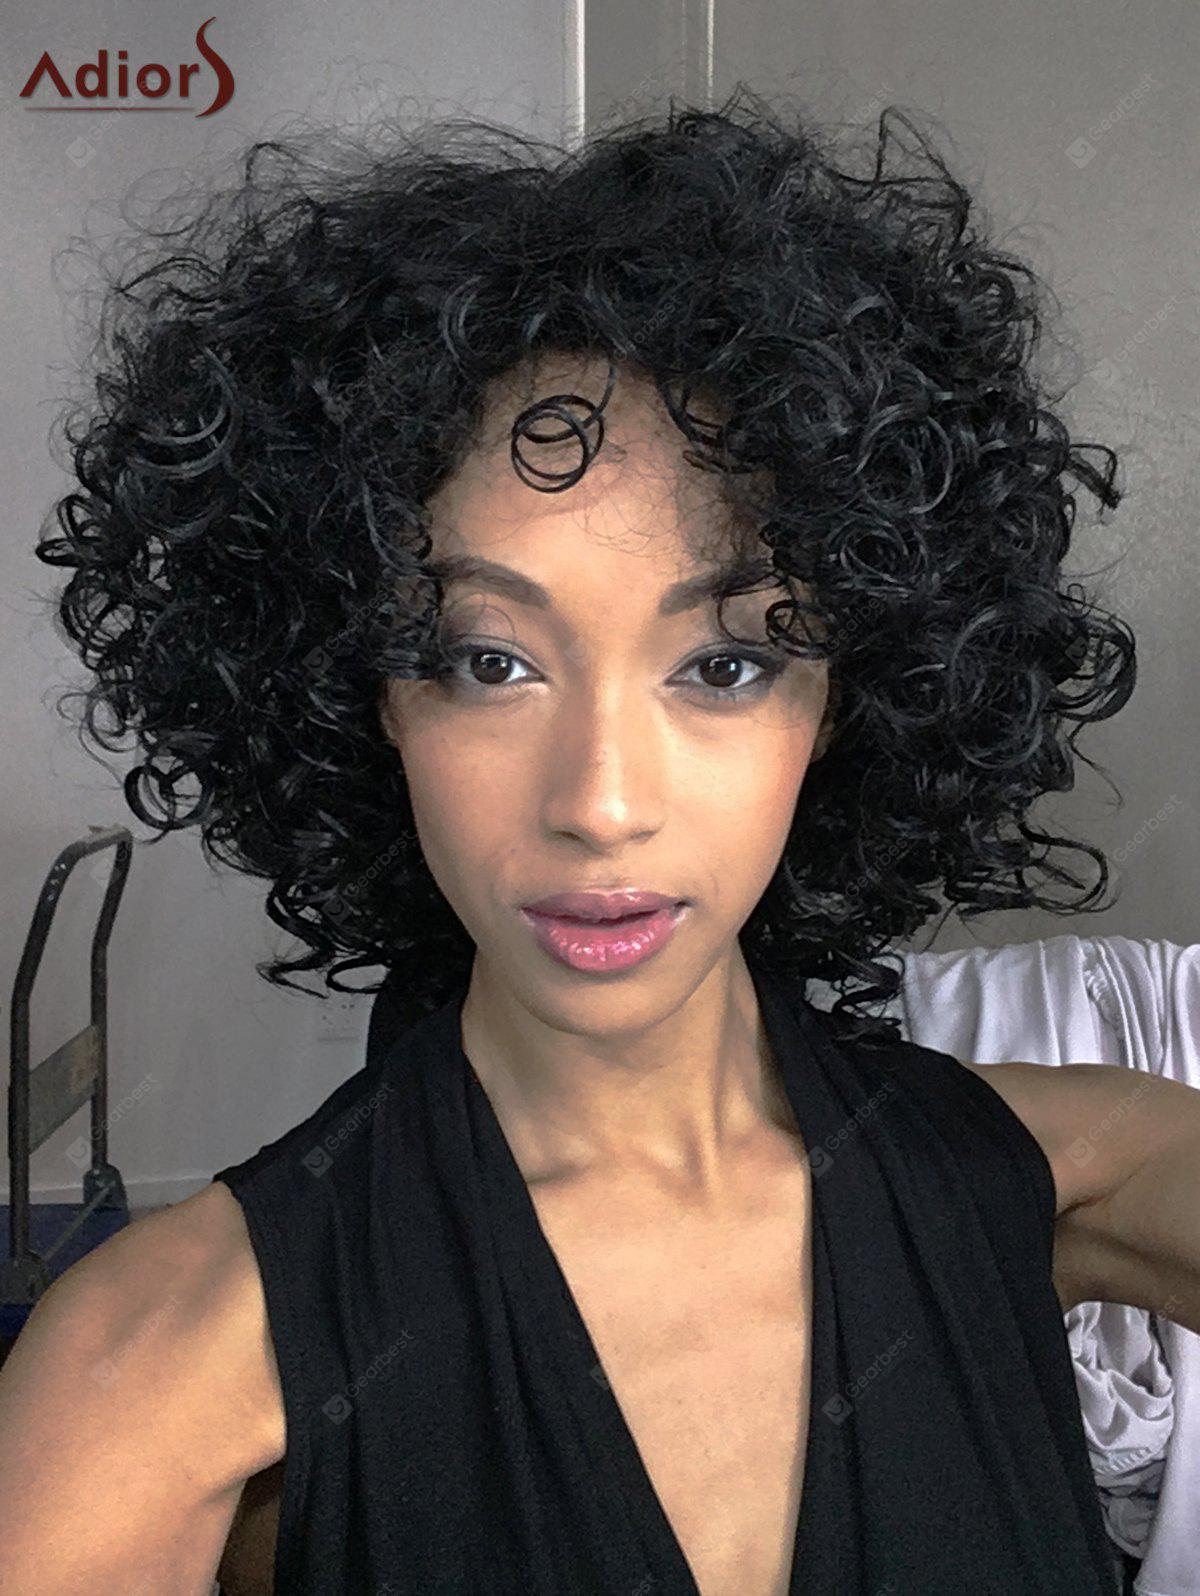 Moyen Afro Curly complet Bang synthétique capless perruque